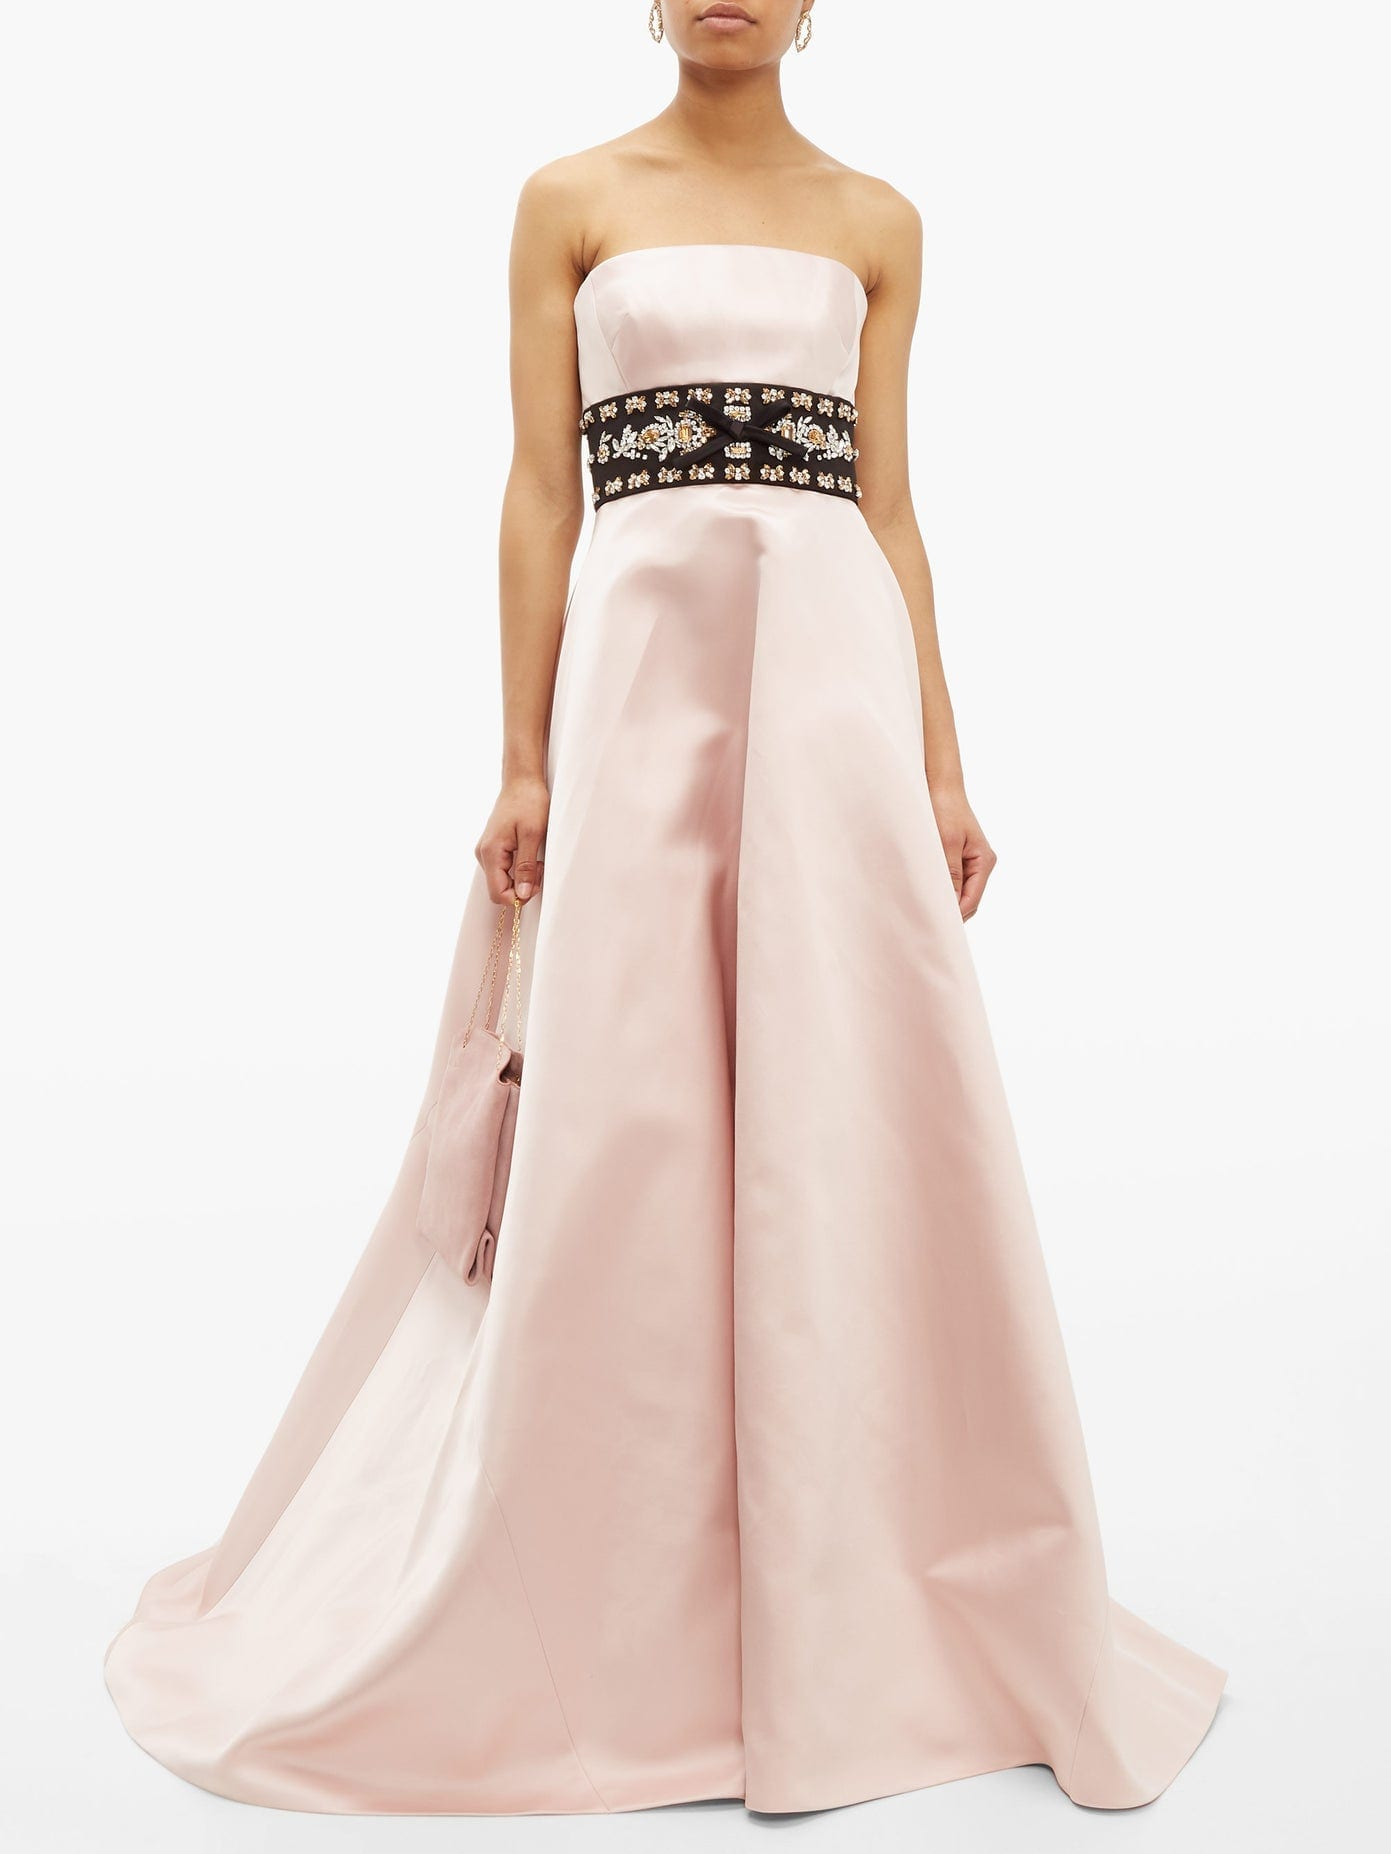 PRADA Crystal-waistband Silk-satin Gown